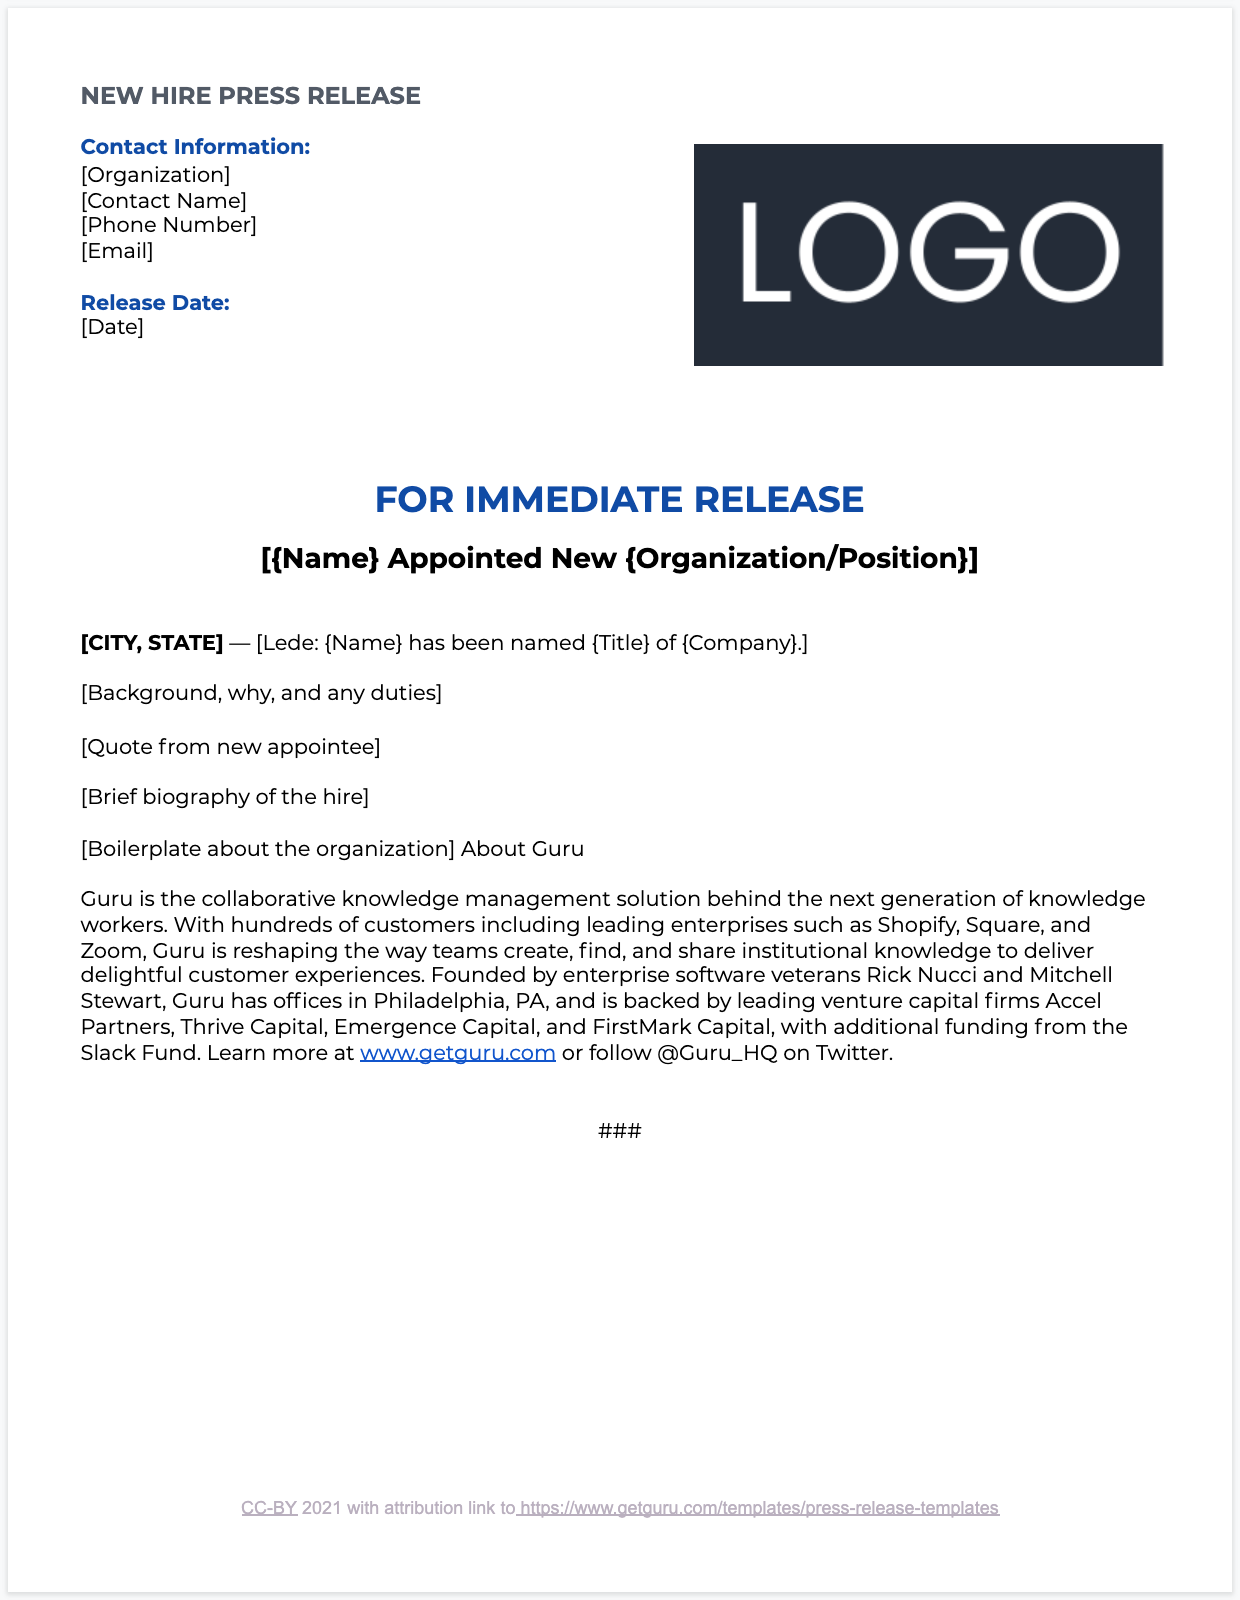 New Hire Press Release Template